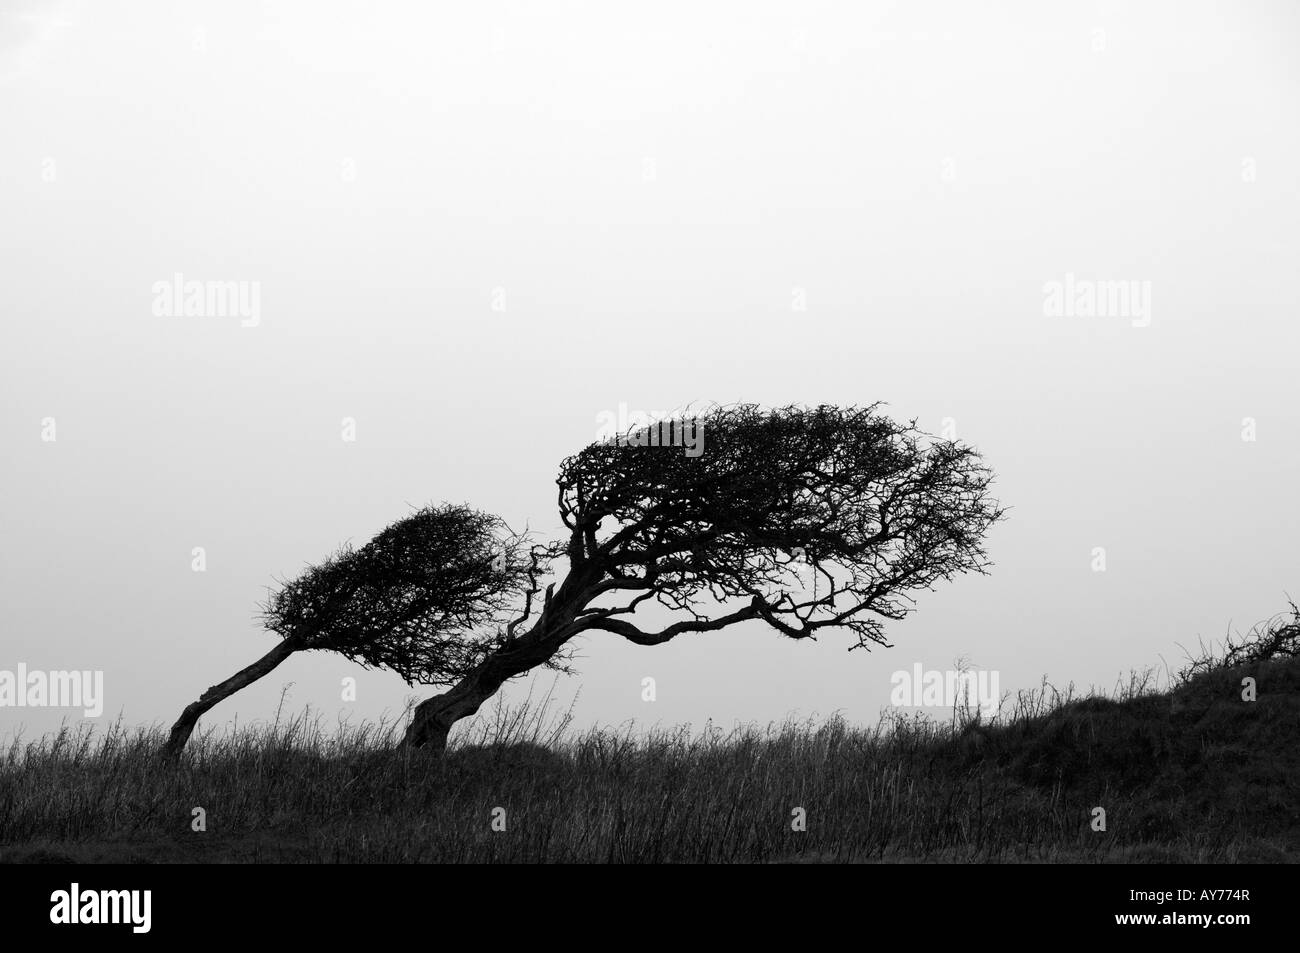 Silhouette of wind blown hawthorn tree on skyline, Dorset, England, UK - Stock Image